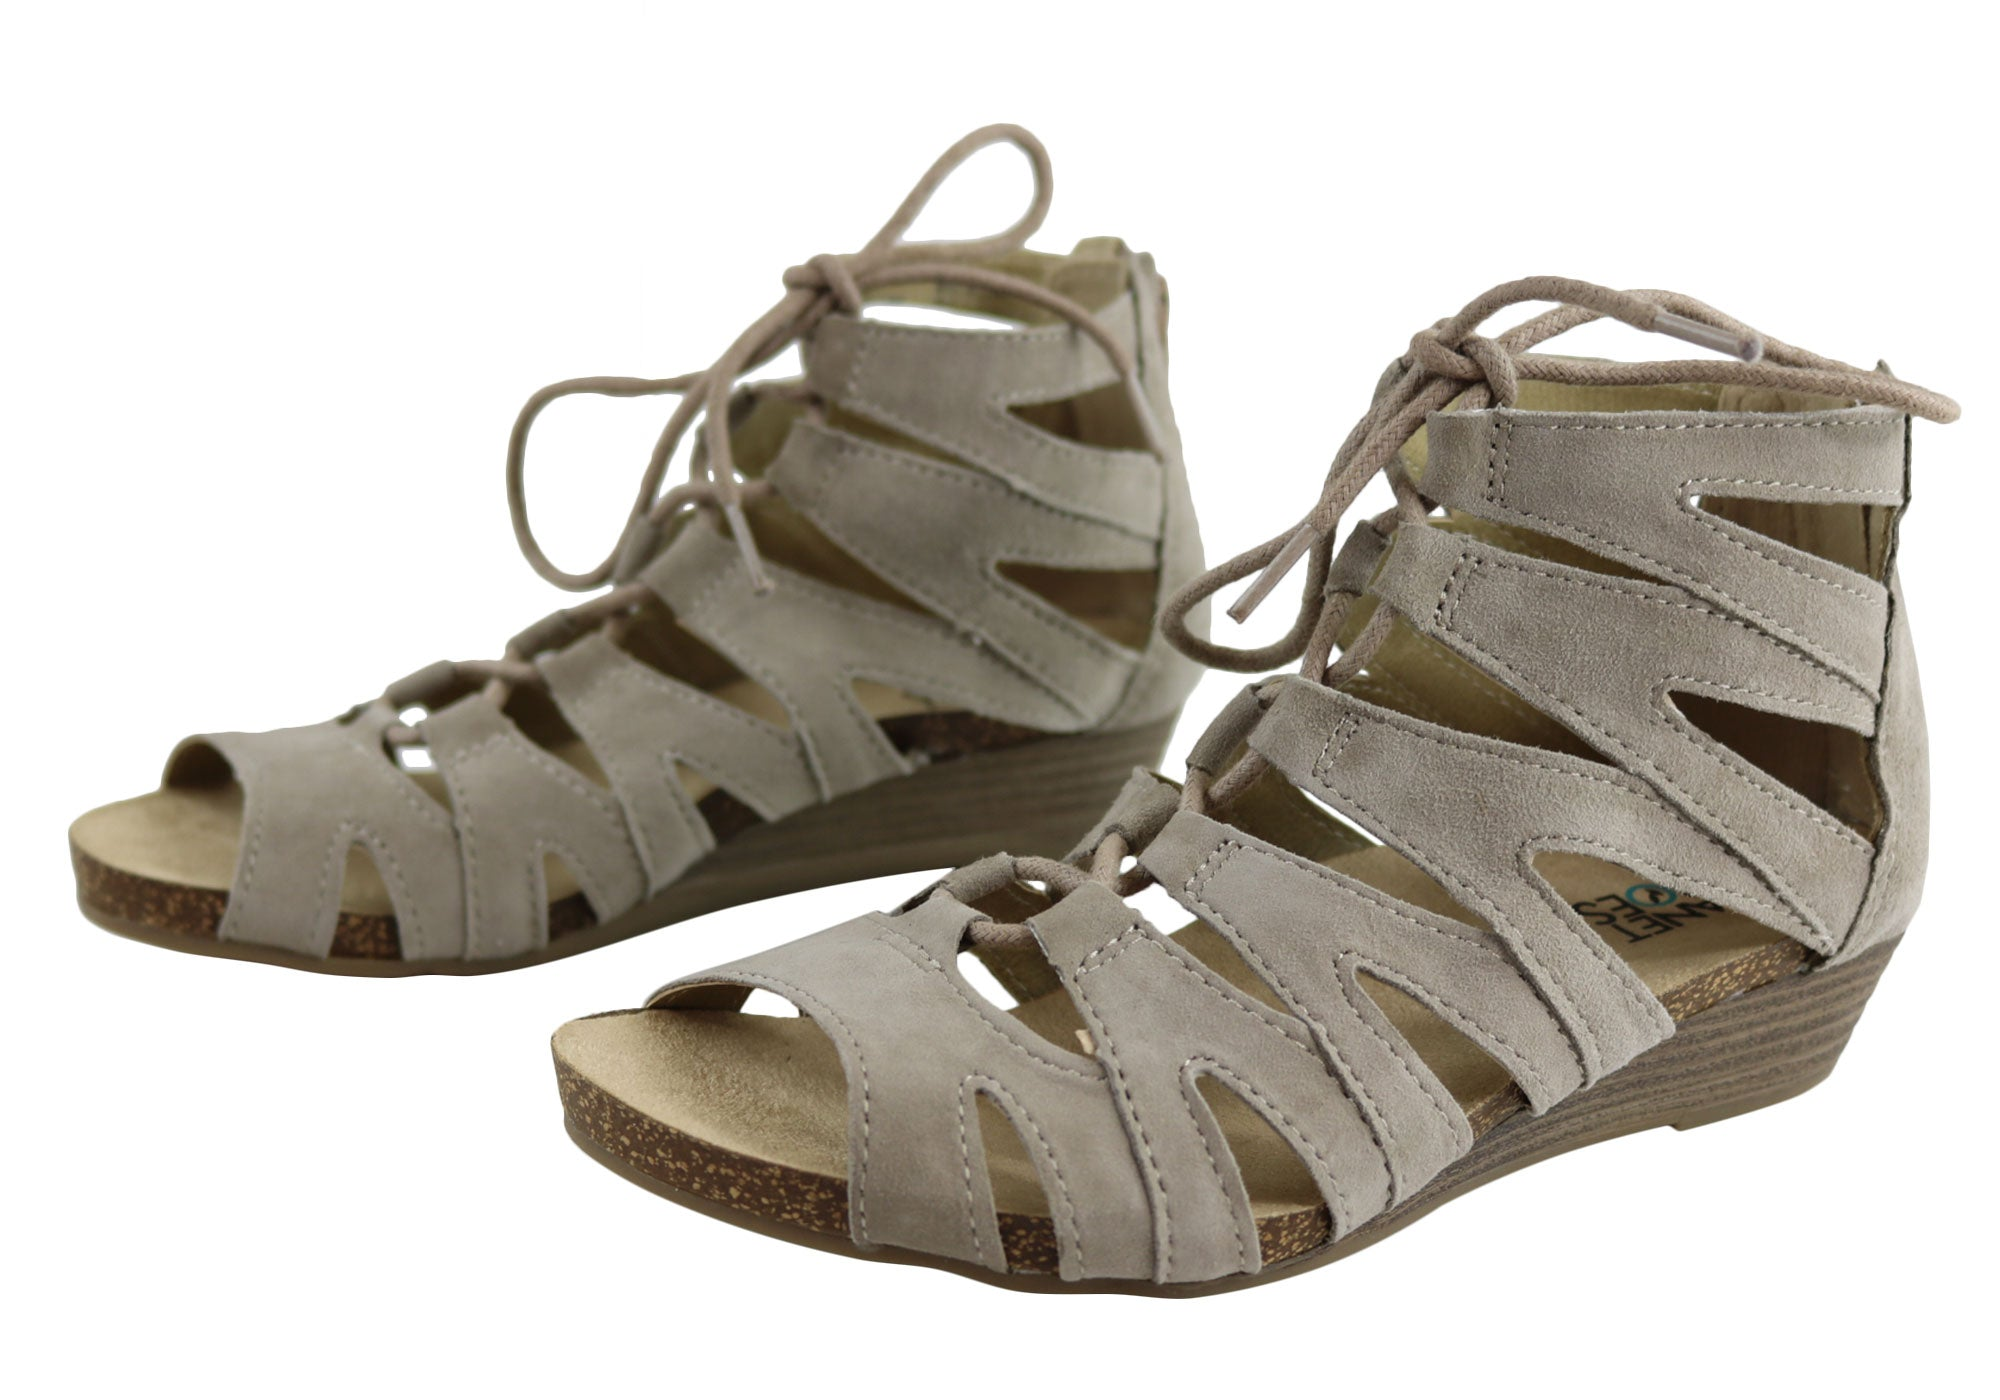 Planet Shoes Anita Womens Comfort Leather Gladiator Wedge ...